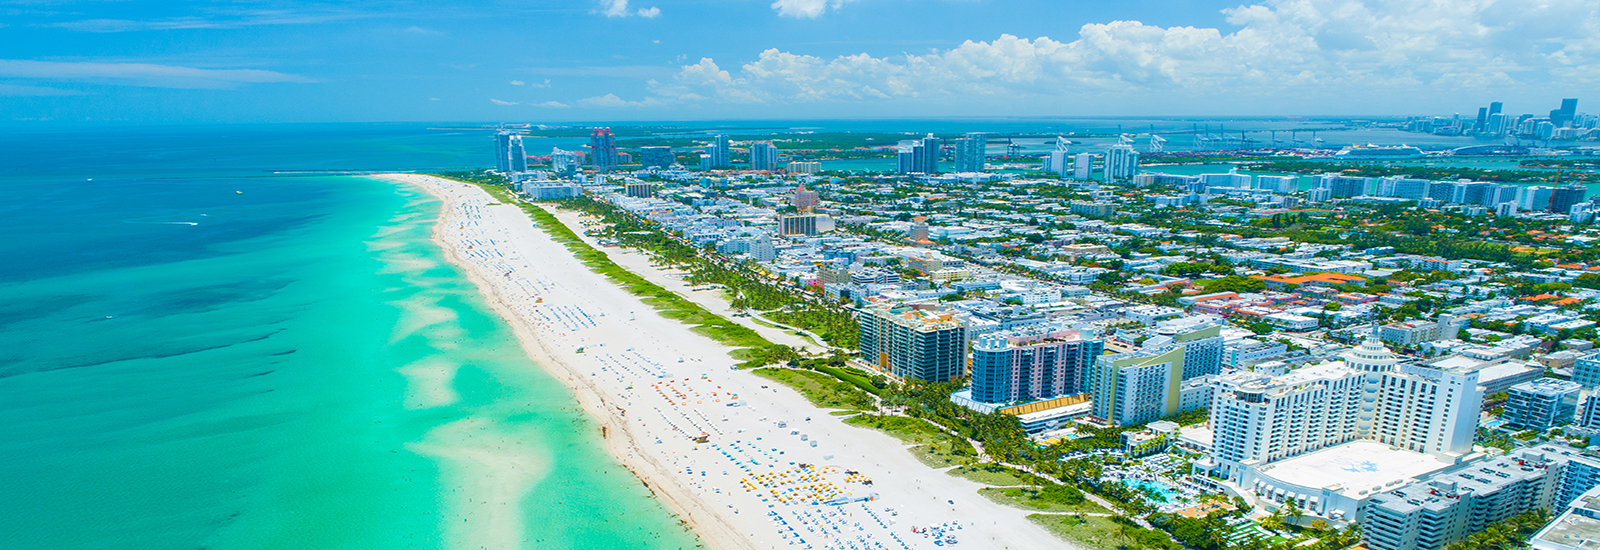 This is a stock photo. An aerial view of Miami Beach in Miami, Florida.